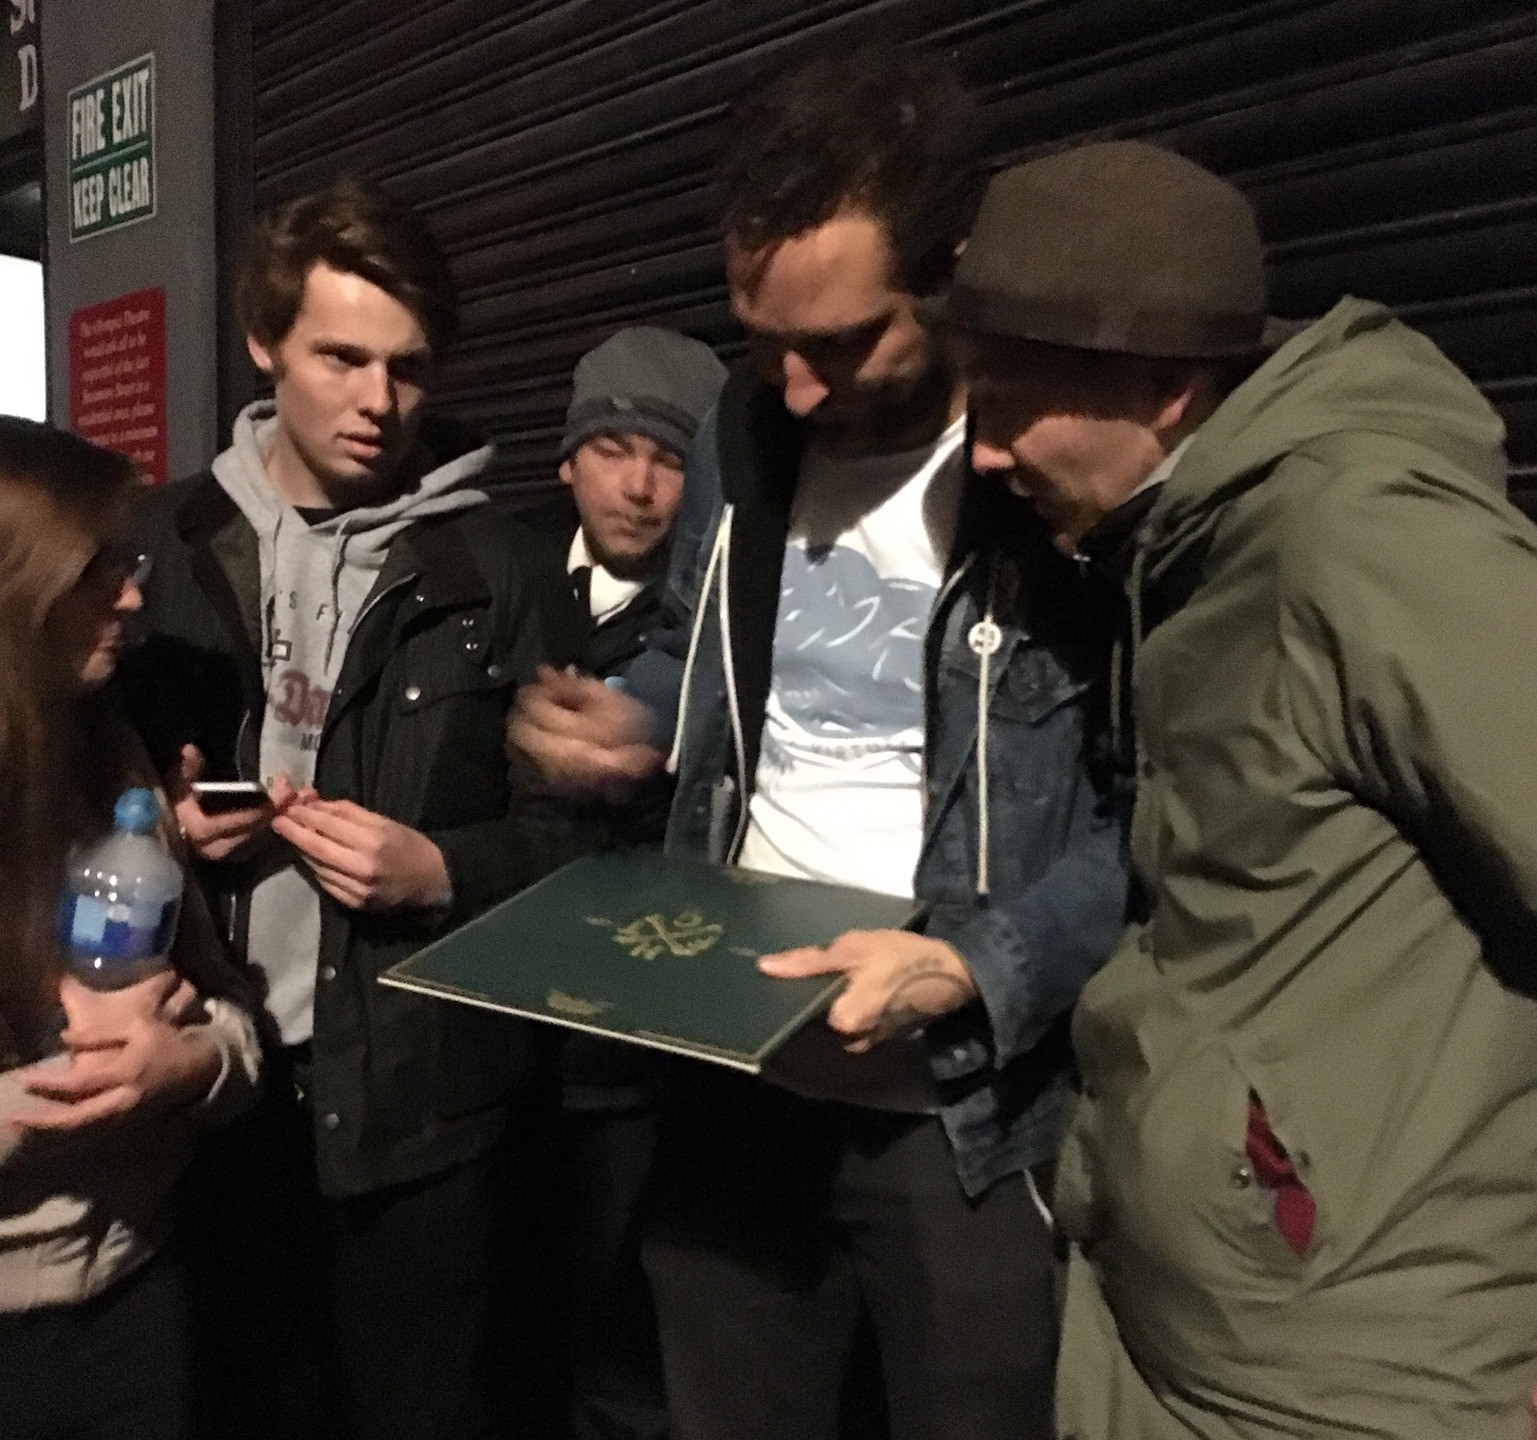 After show signing